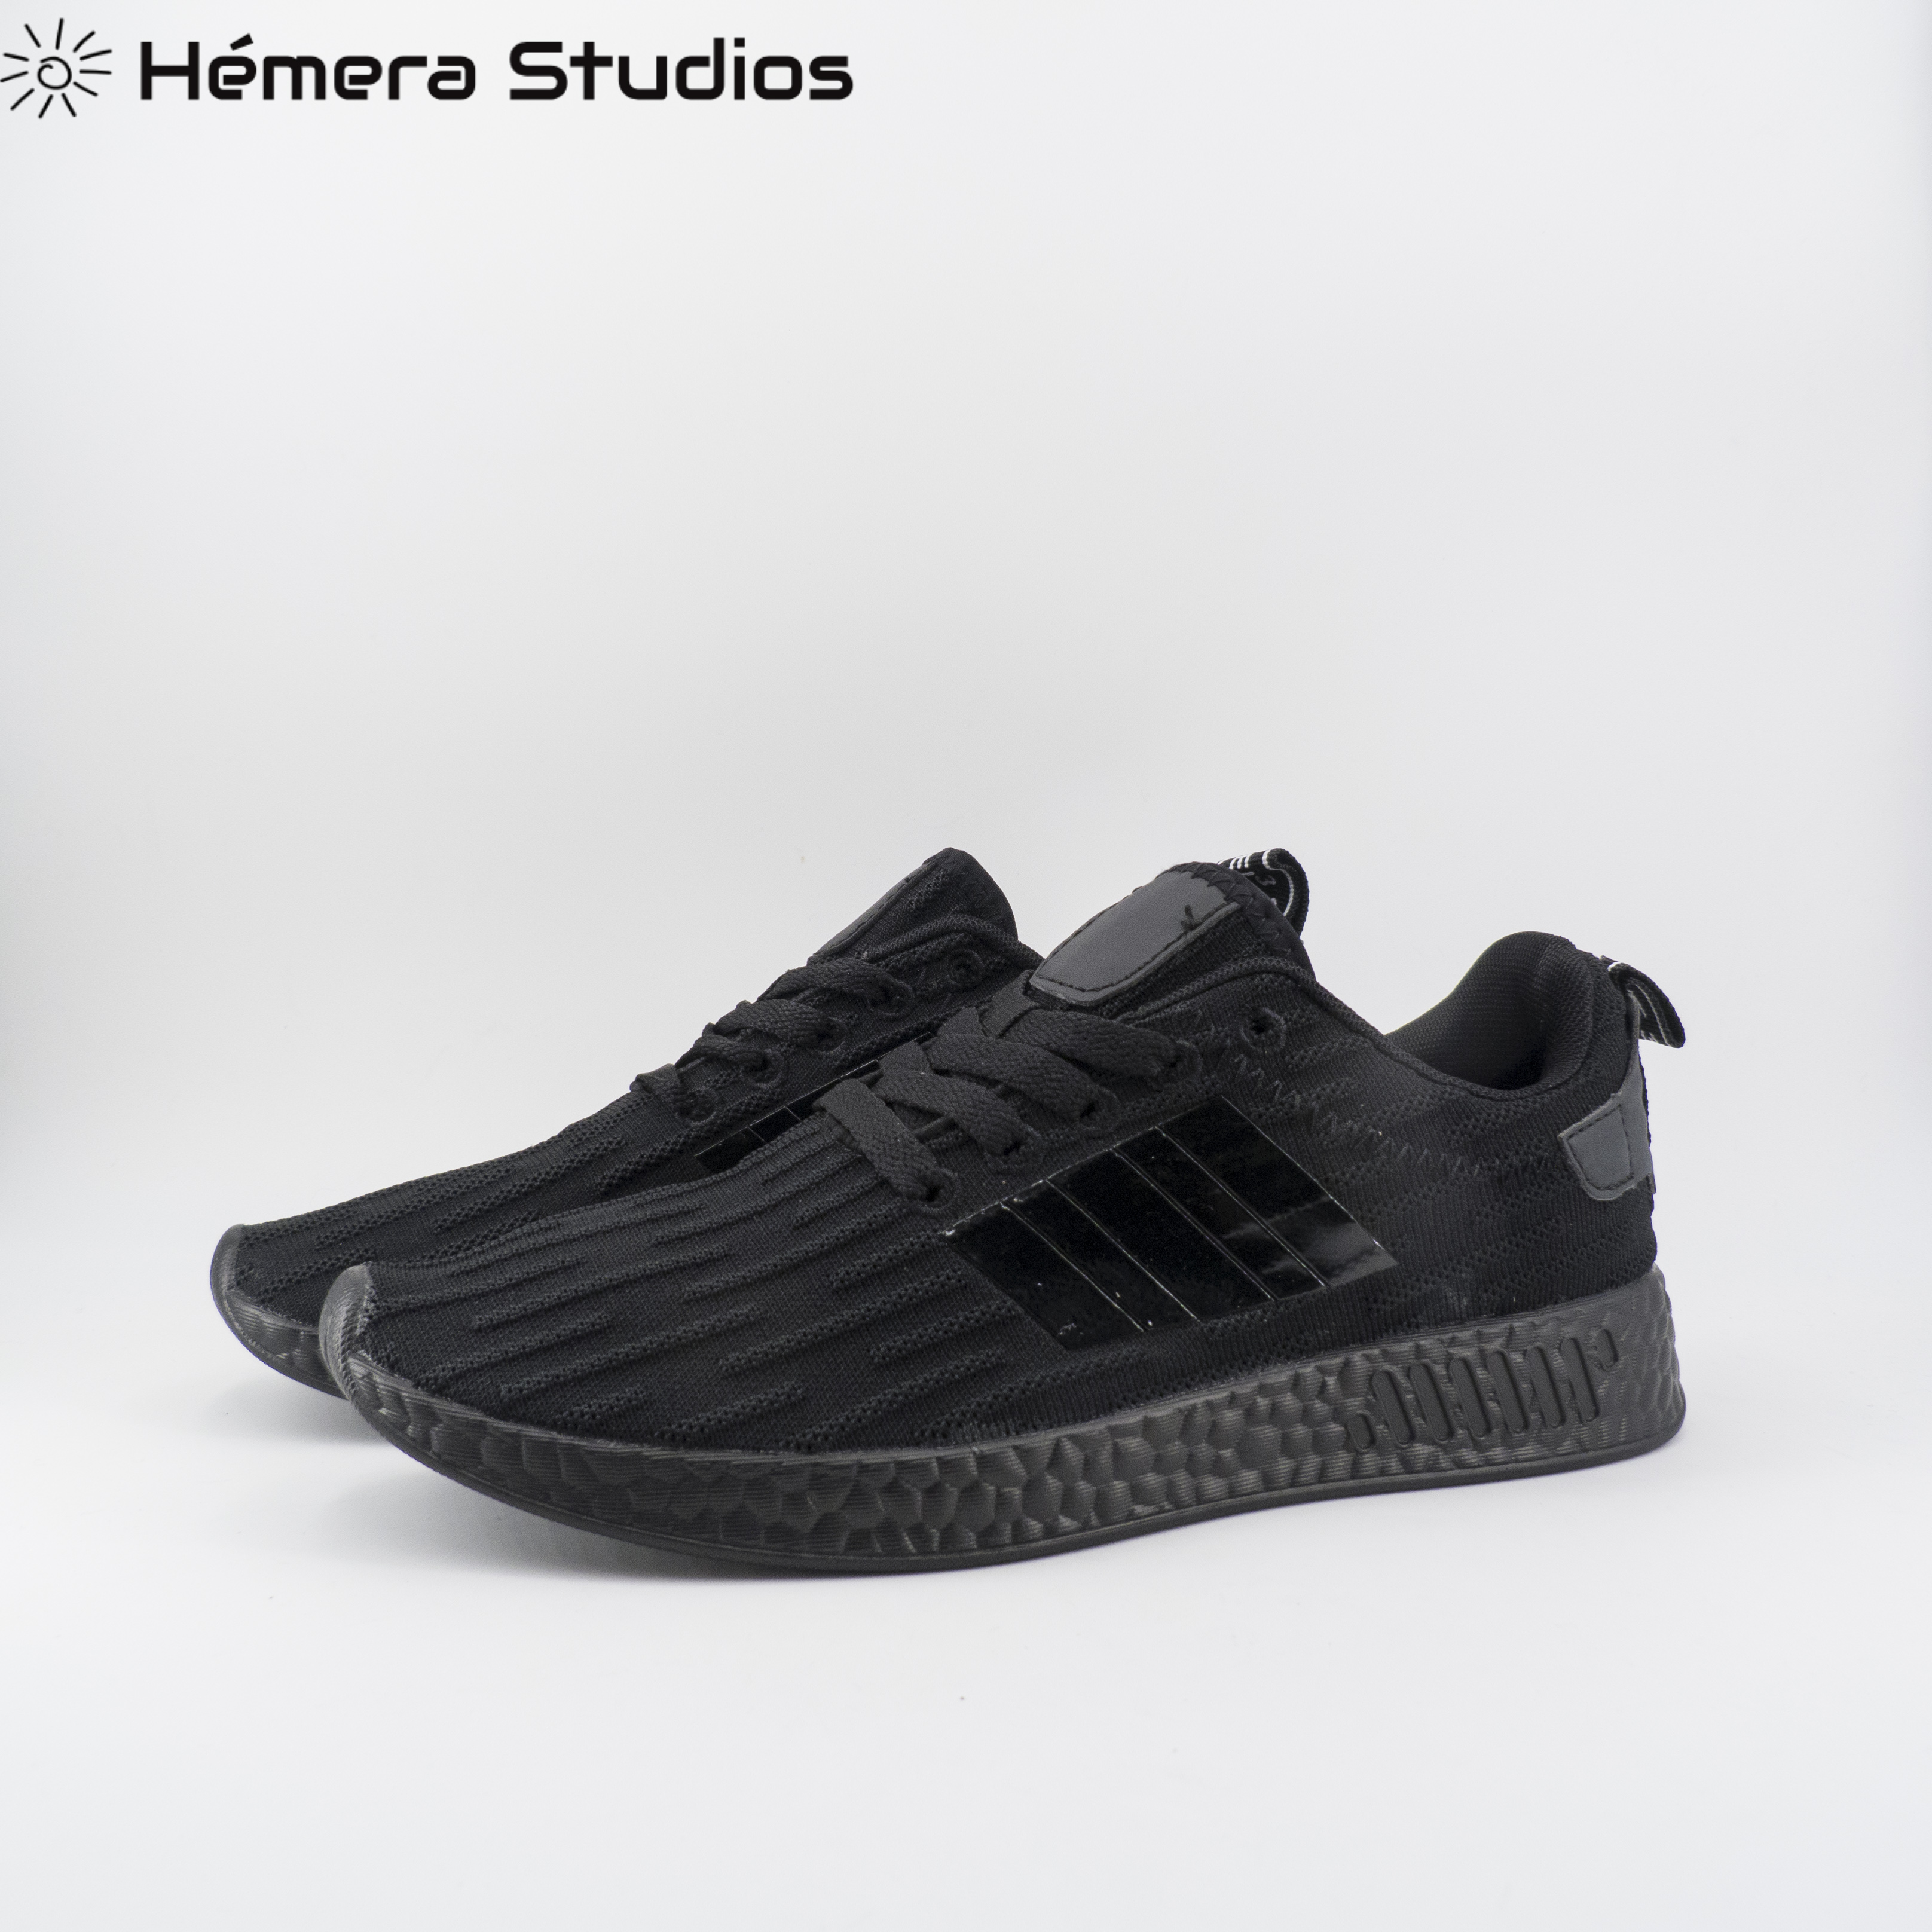 Man Shoes With Cords Black Sneakers With Super Light And Comfortable Platform Sneakers Fashion Man